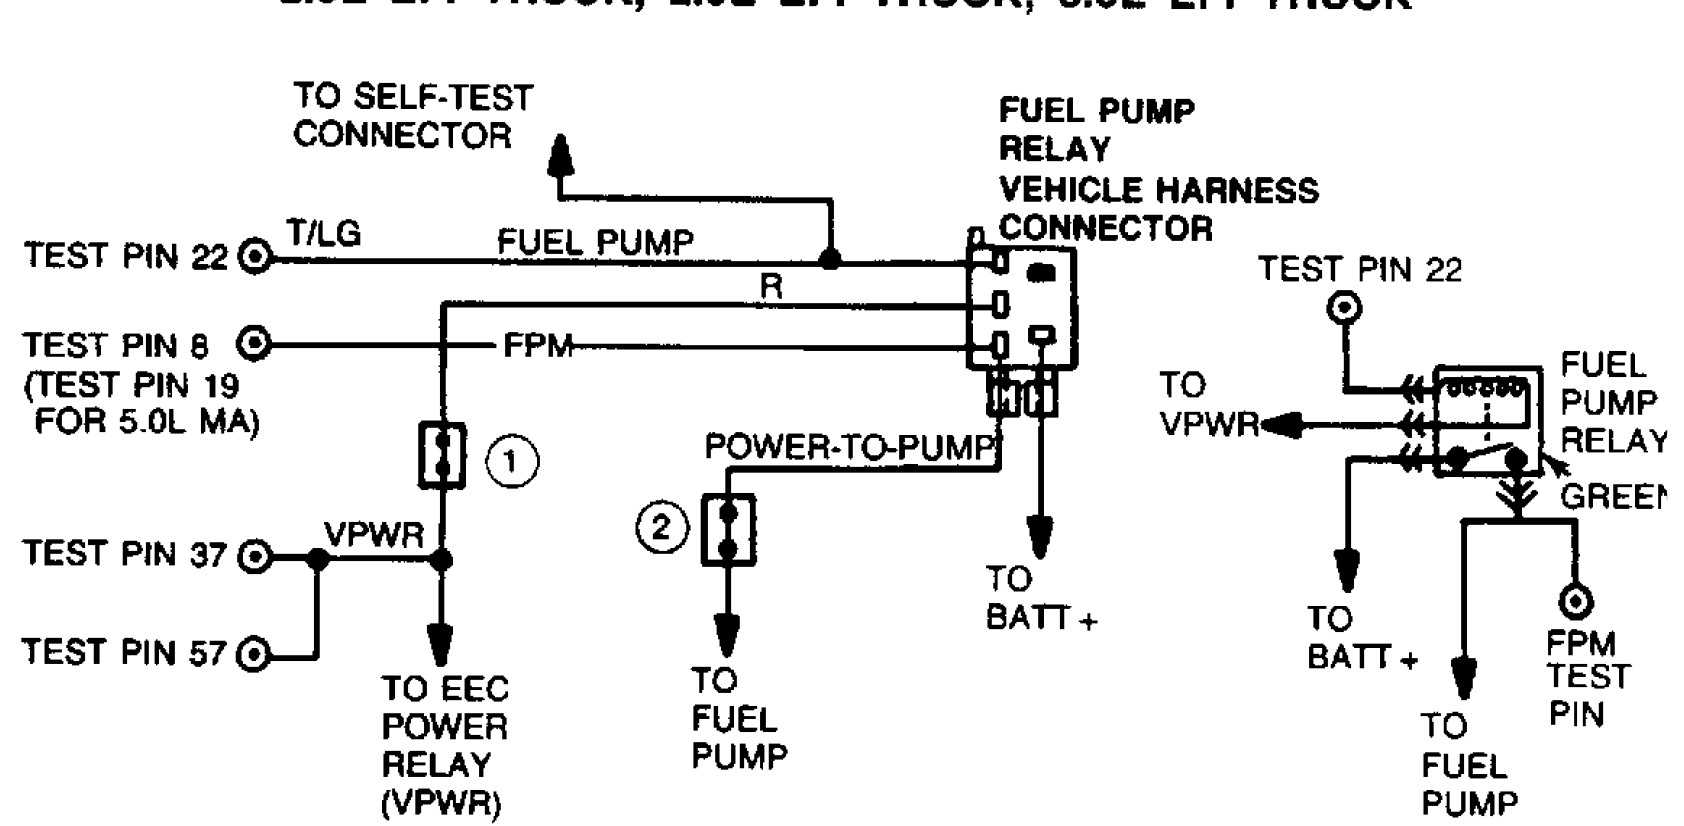 Ford Fuel Pump Relay Wiring Diagram Library Malfunction From The Pcm To Fuelpump Here Is A 1989 Ranger Obd1 Location Where 1998